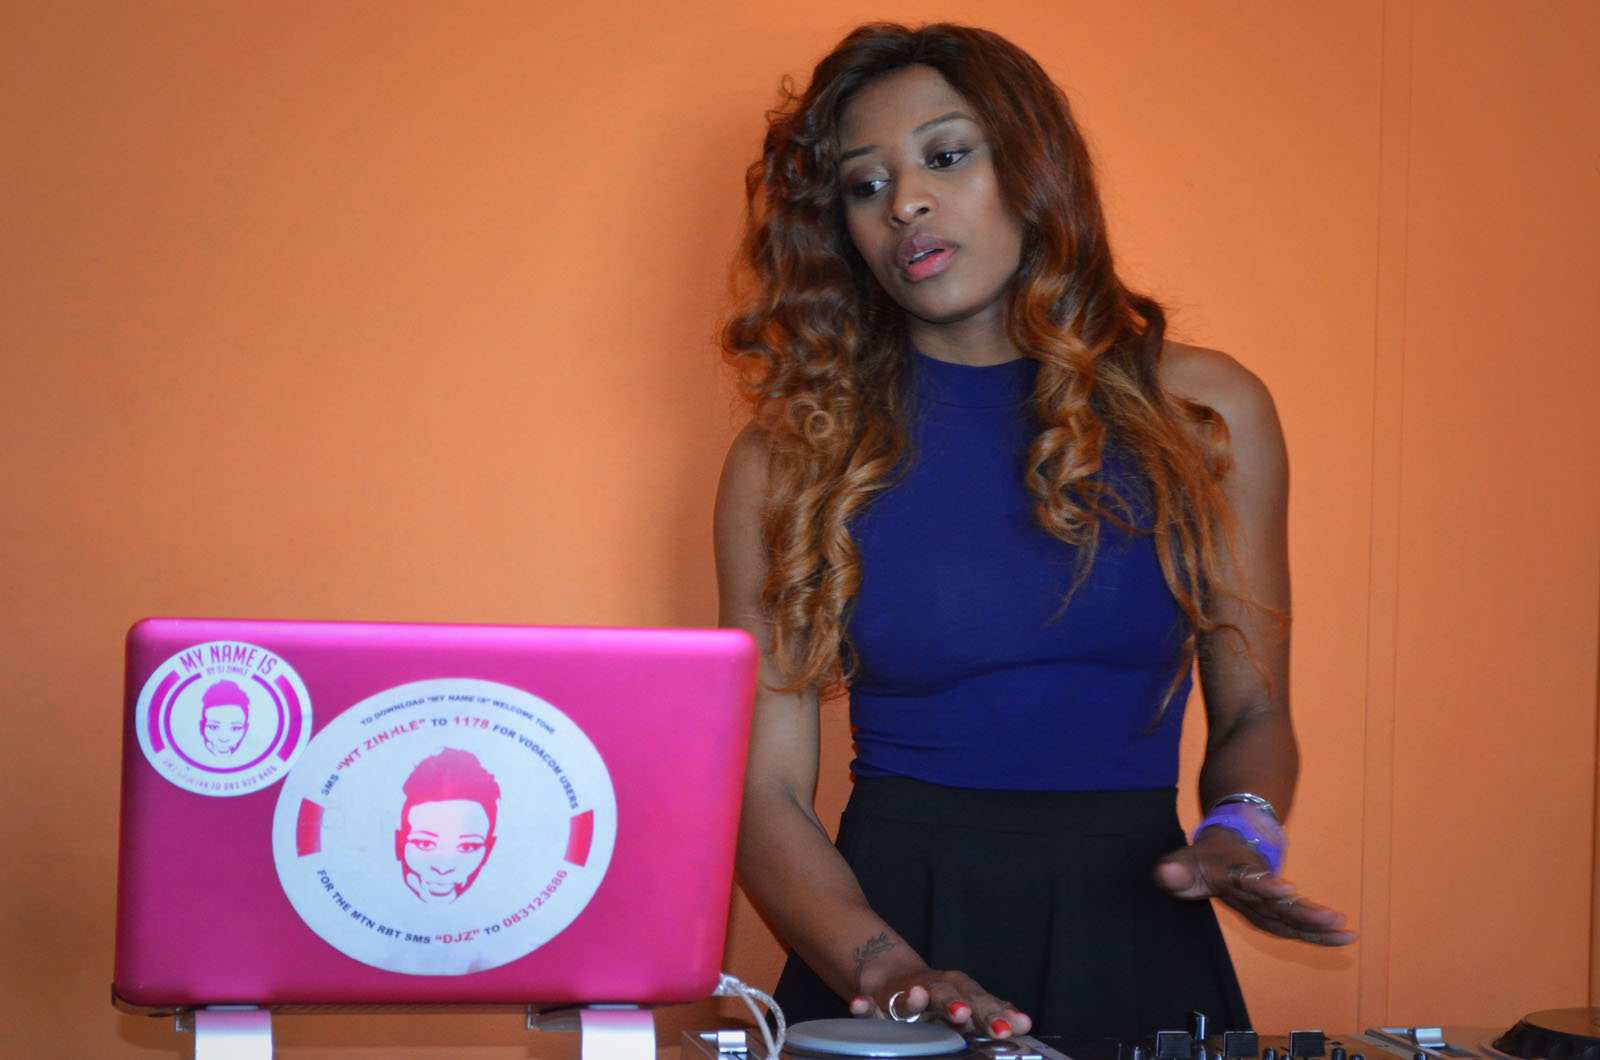 who is dating dj zinhle Nothing says i hate you more than getting blocked on social media it's the ultimate slap in the face, especially if you are a celebrity skolopad became the latest victim of lerato kganyago's block button.